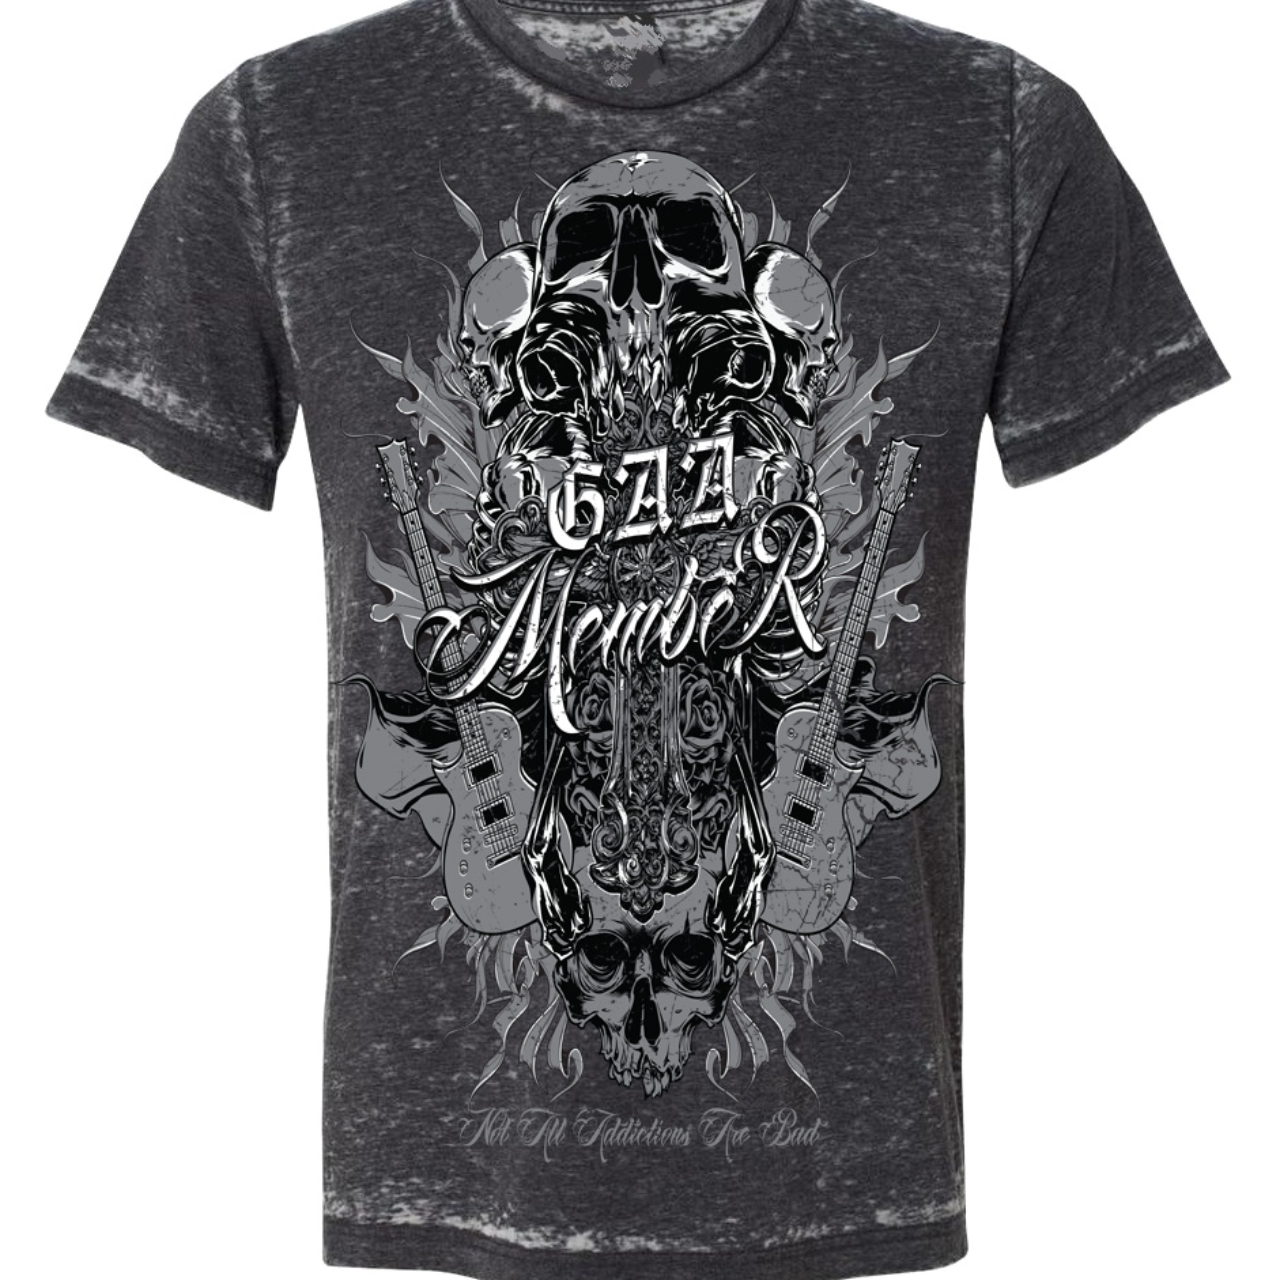 Product Image 1 - G.A.A. Members Exclusive Premium Vintage